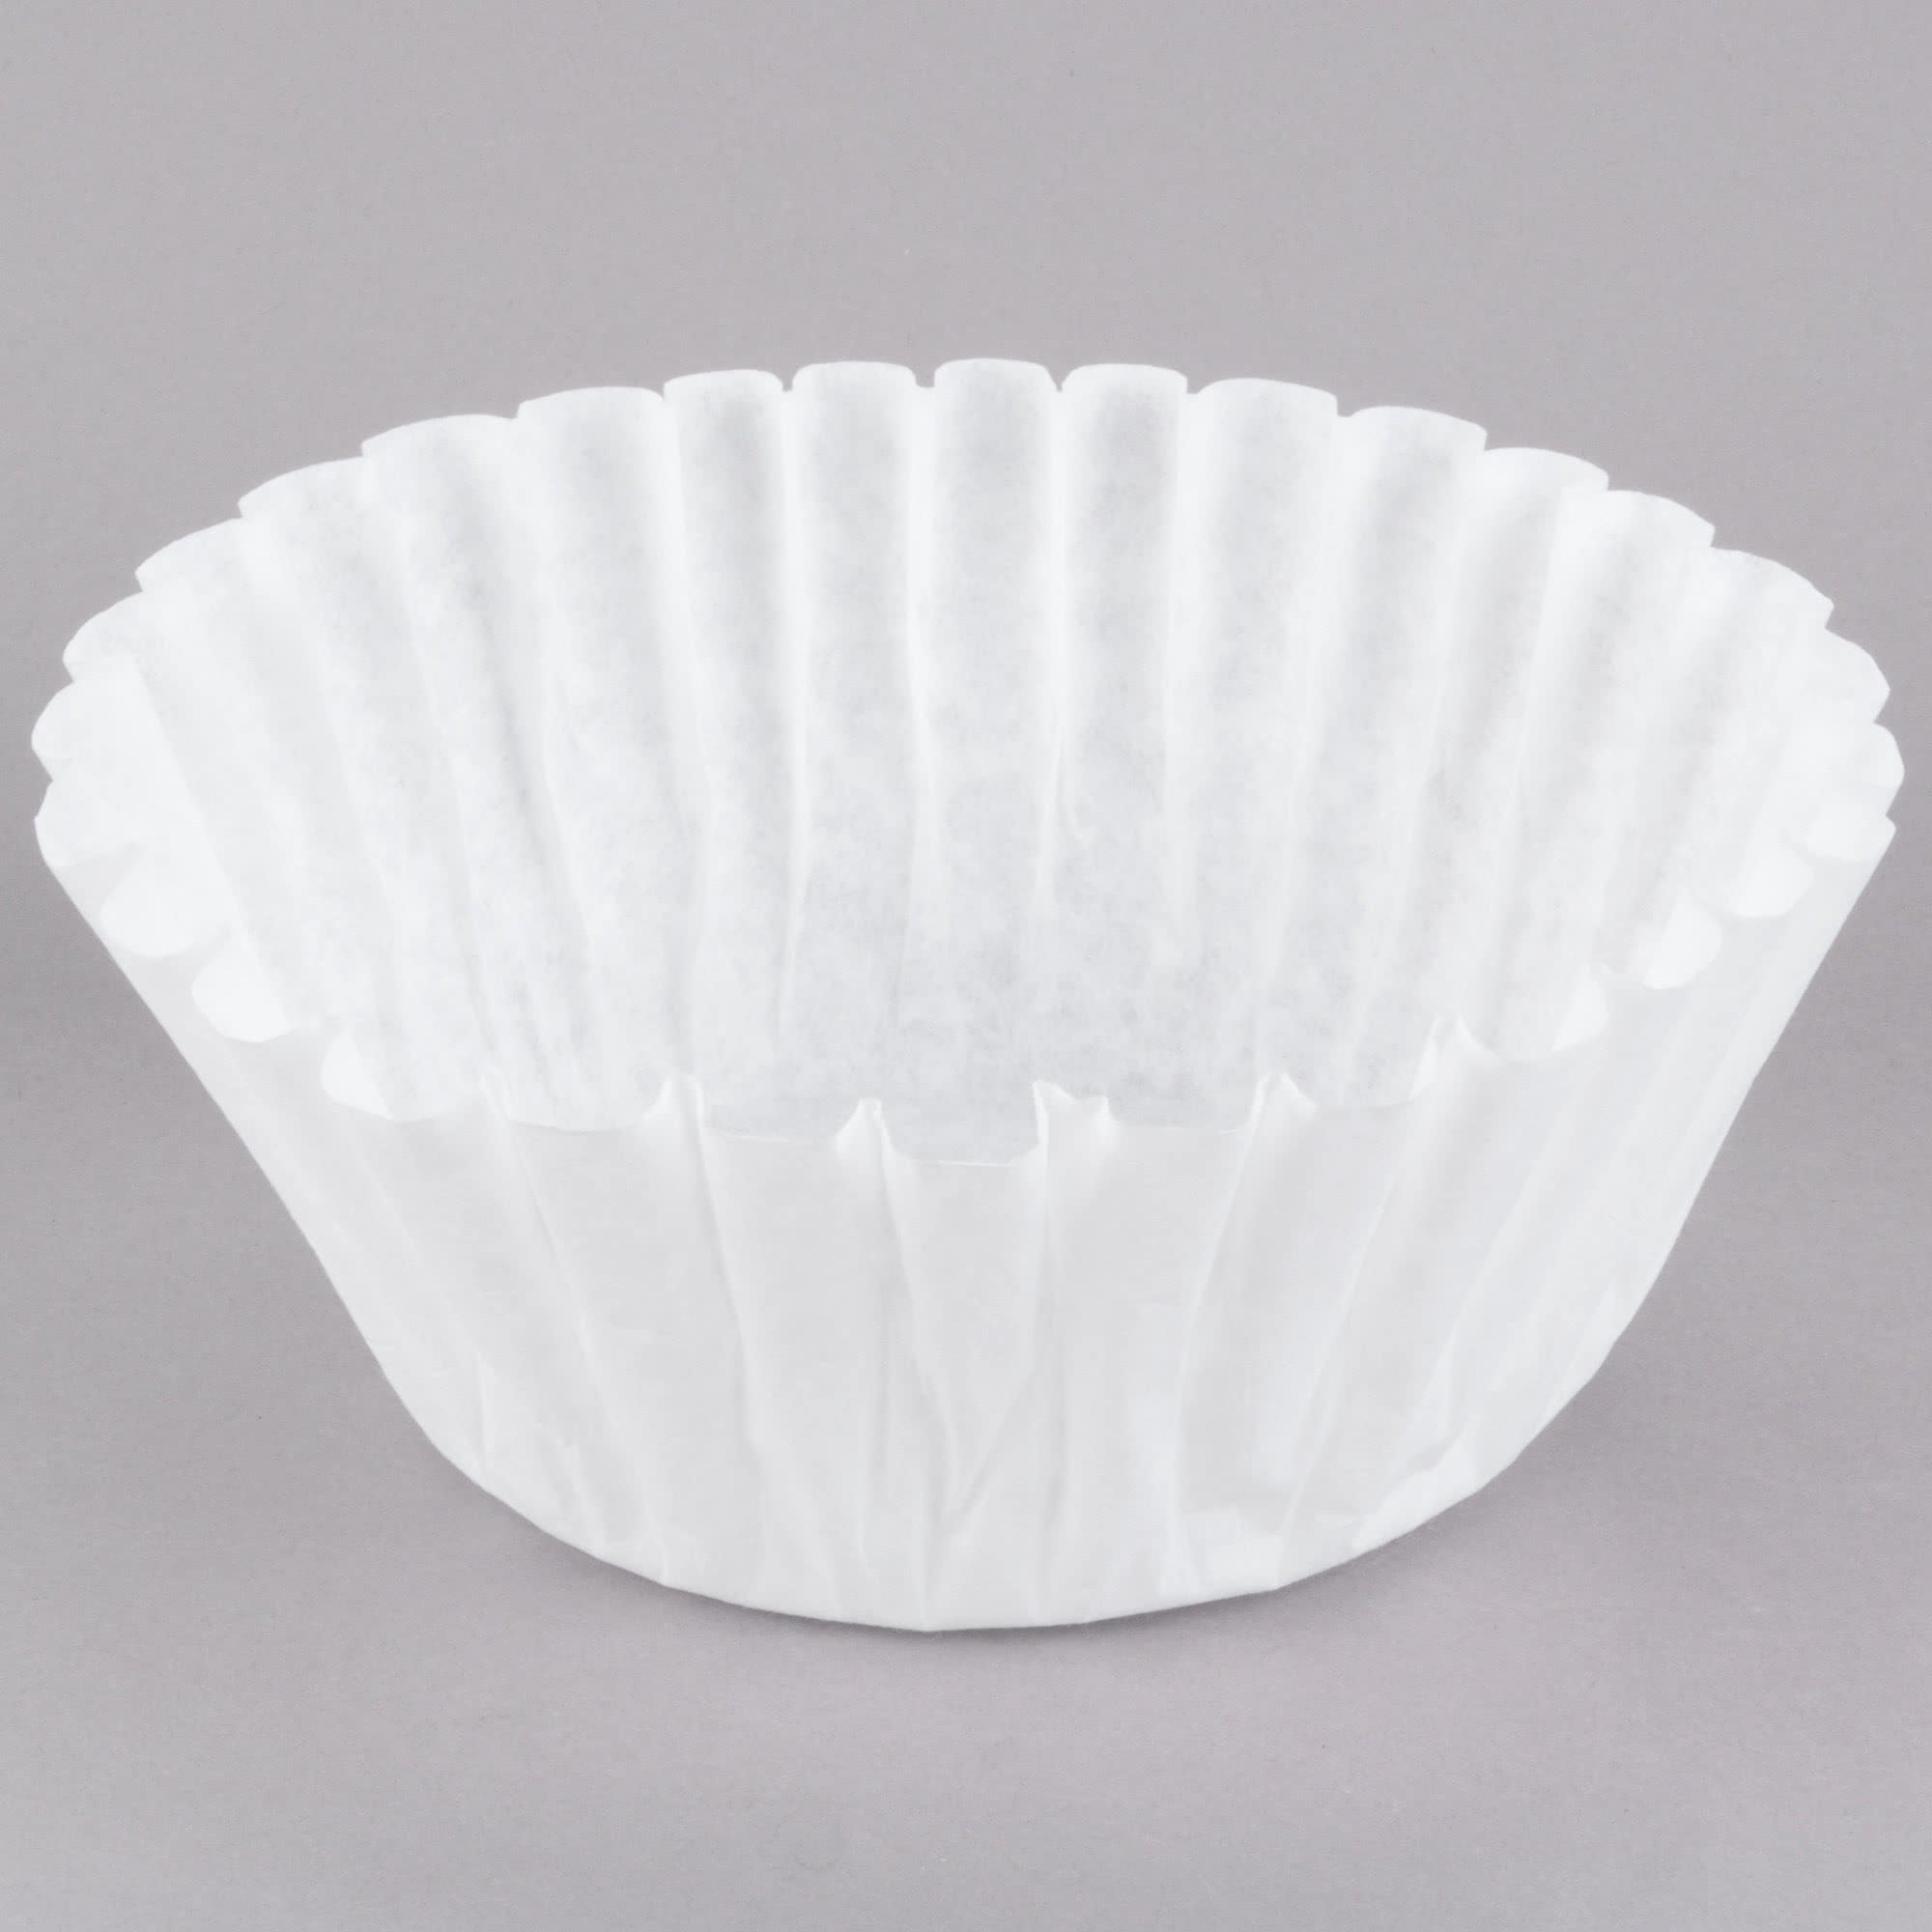 TableTop King ABB2.0WP 14'' x 6'' Coffee Filter for ABB20SS Gourmet Shuttle Coffee Brewer Basket - 500/Case